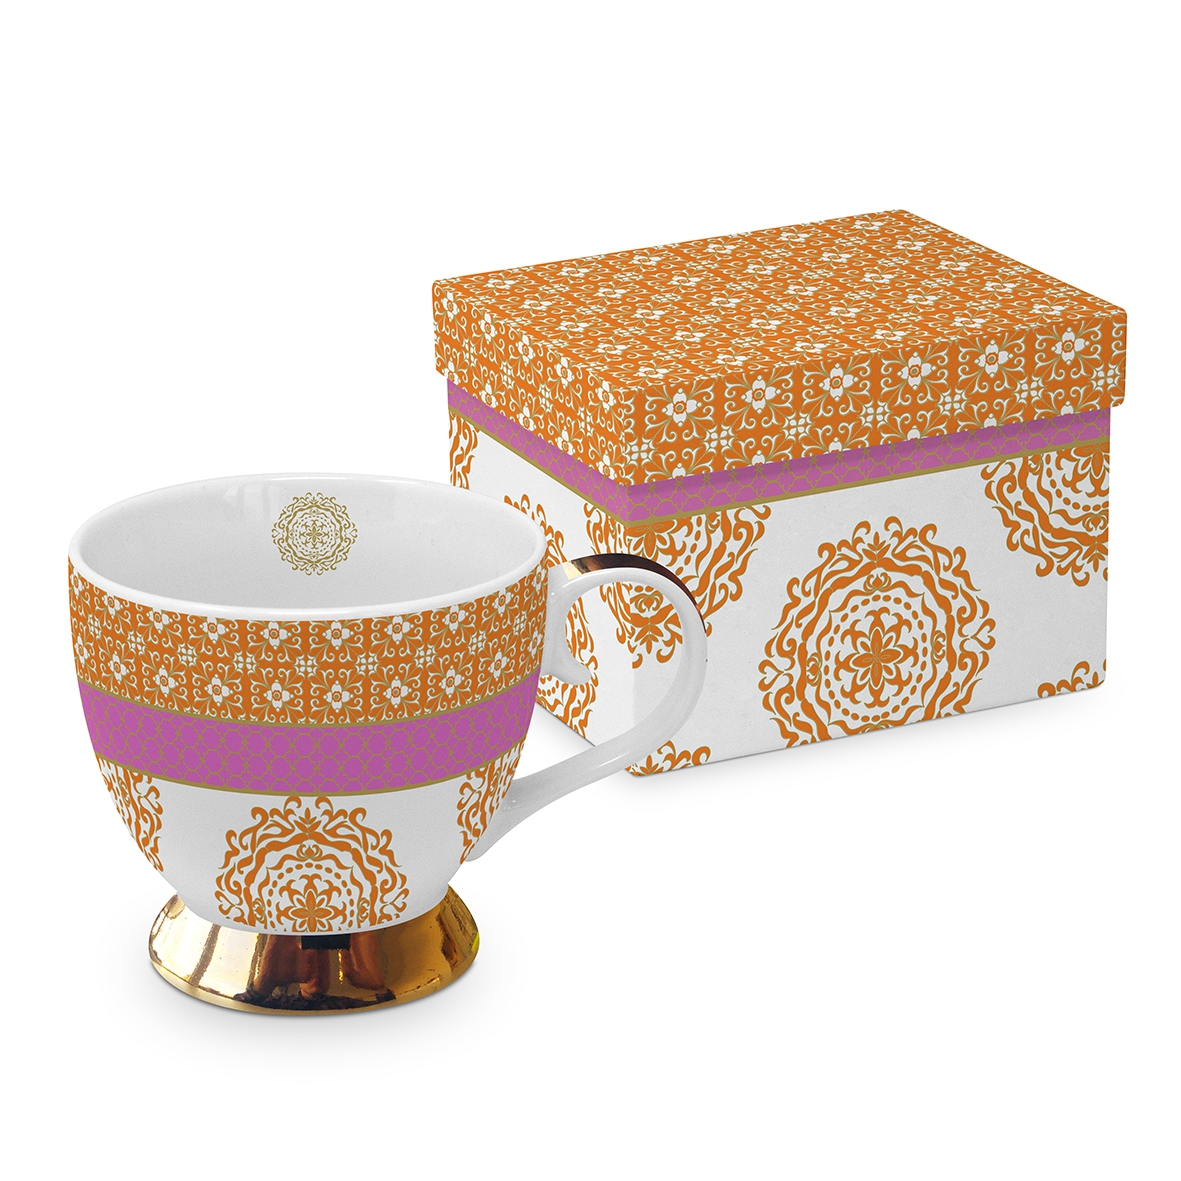 Classic Tasse - Madaket orange pink real gold